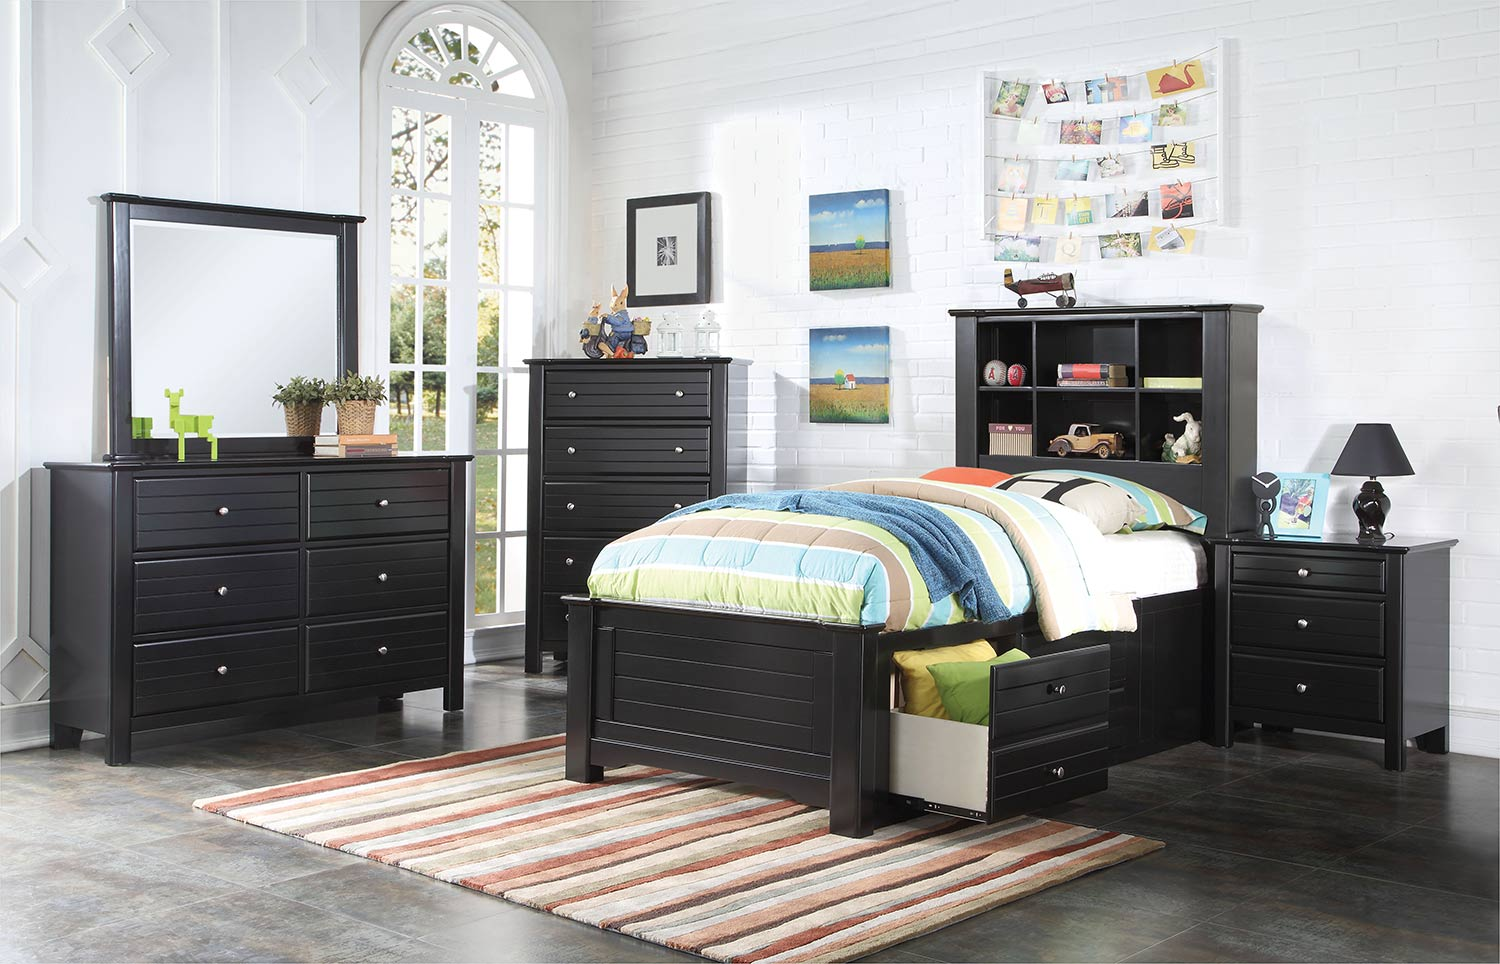 Acme Mallowsea Bedroom Set with Storage Rail - Black